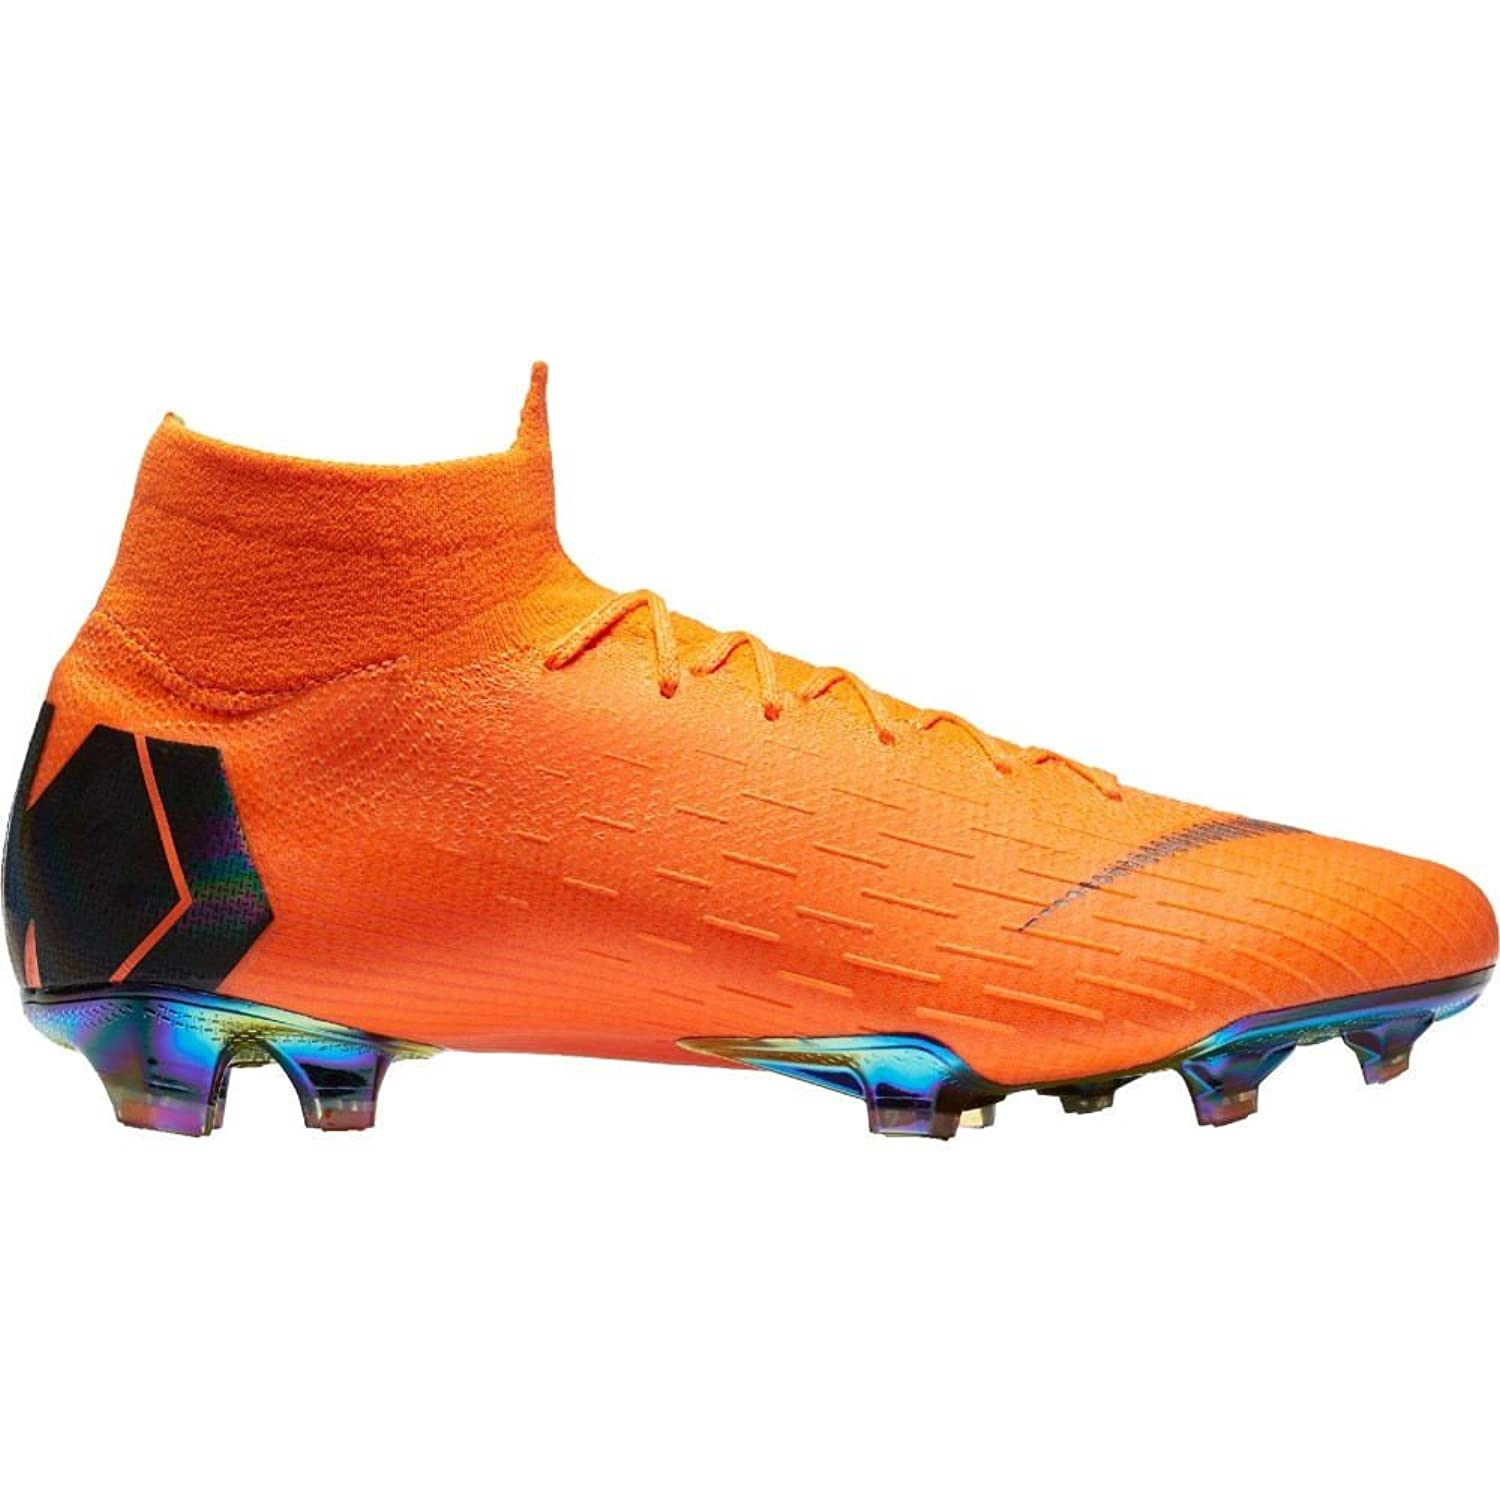 (ナイキ) Nike メンズ サッカー シューズ靴 Nike Mercurial Superfly 6 Elite FG Soccer Cleats [並行輸入品] B07BPQR26X M10/W11.5-Medium